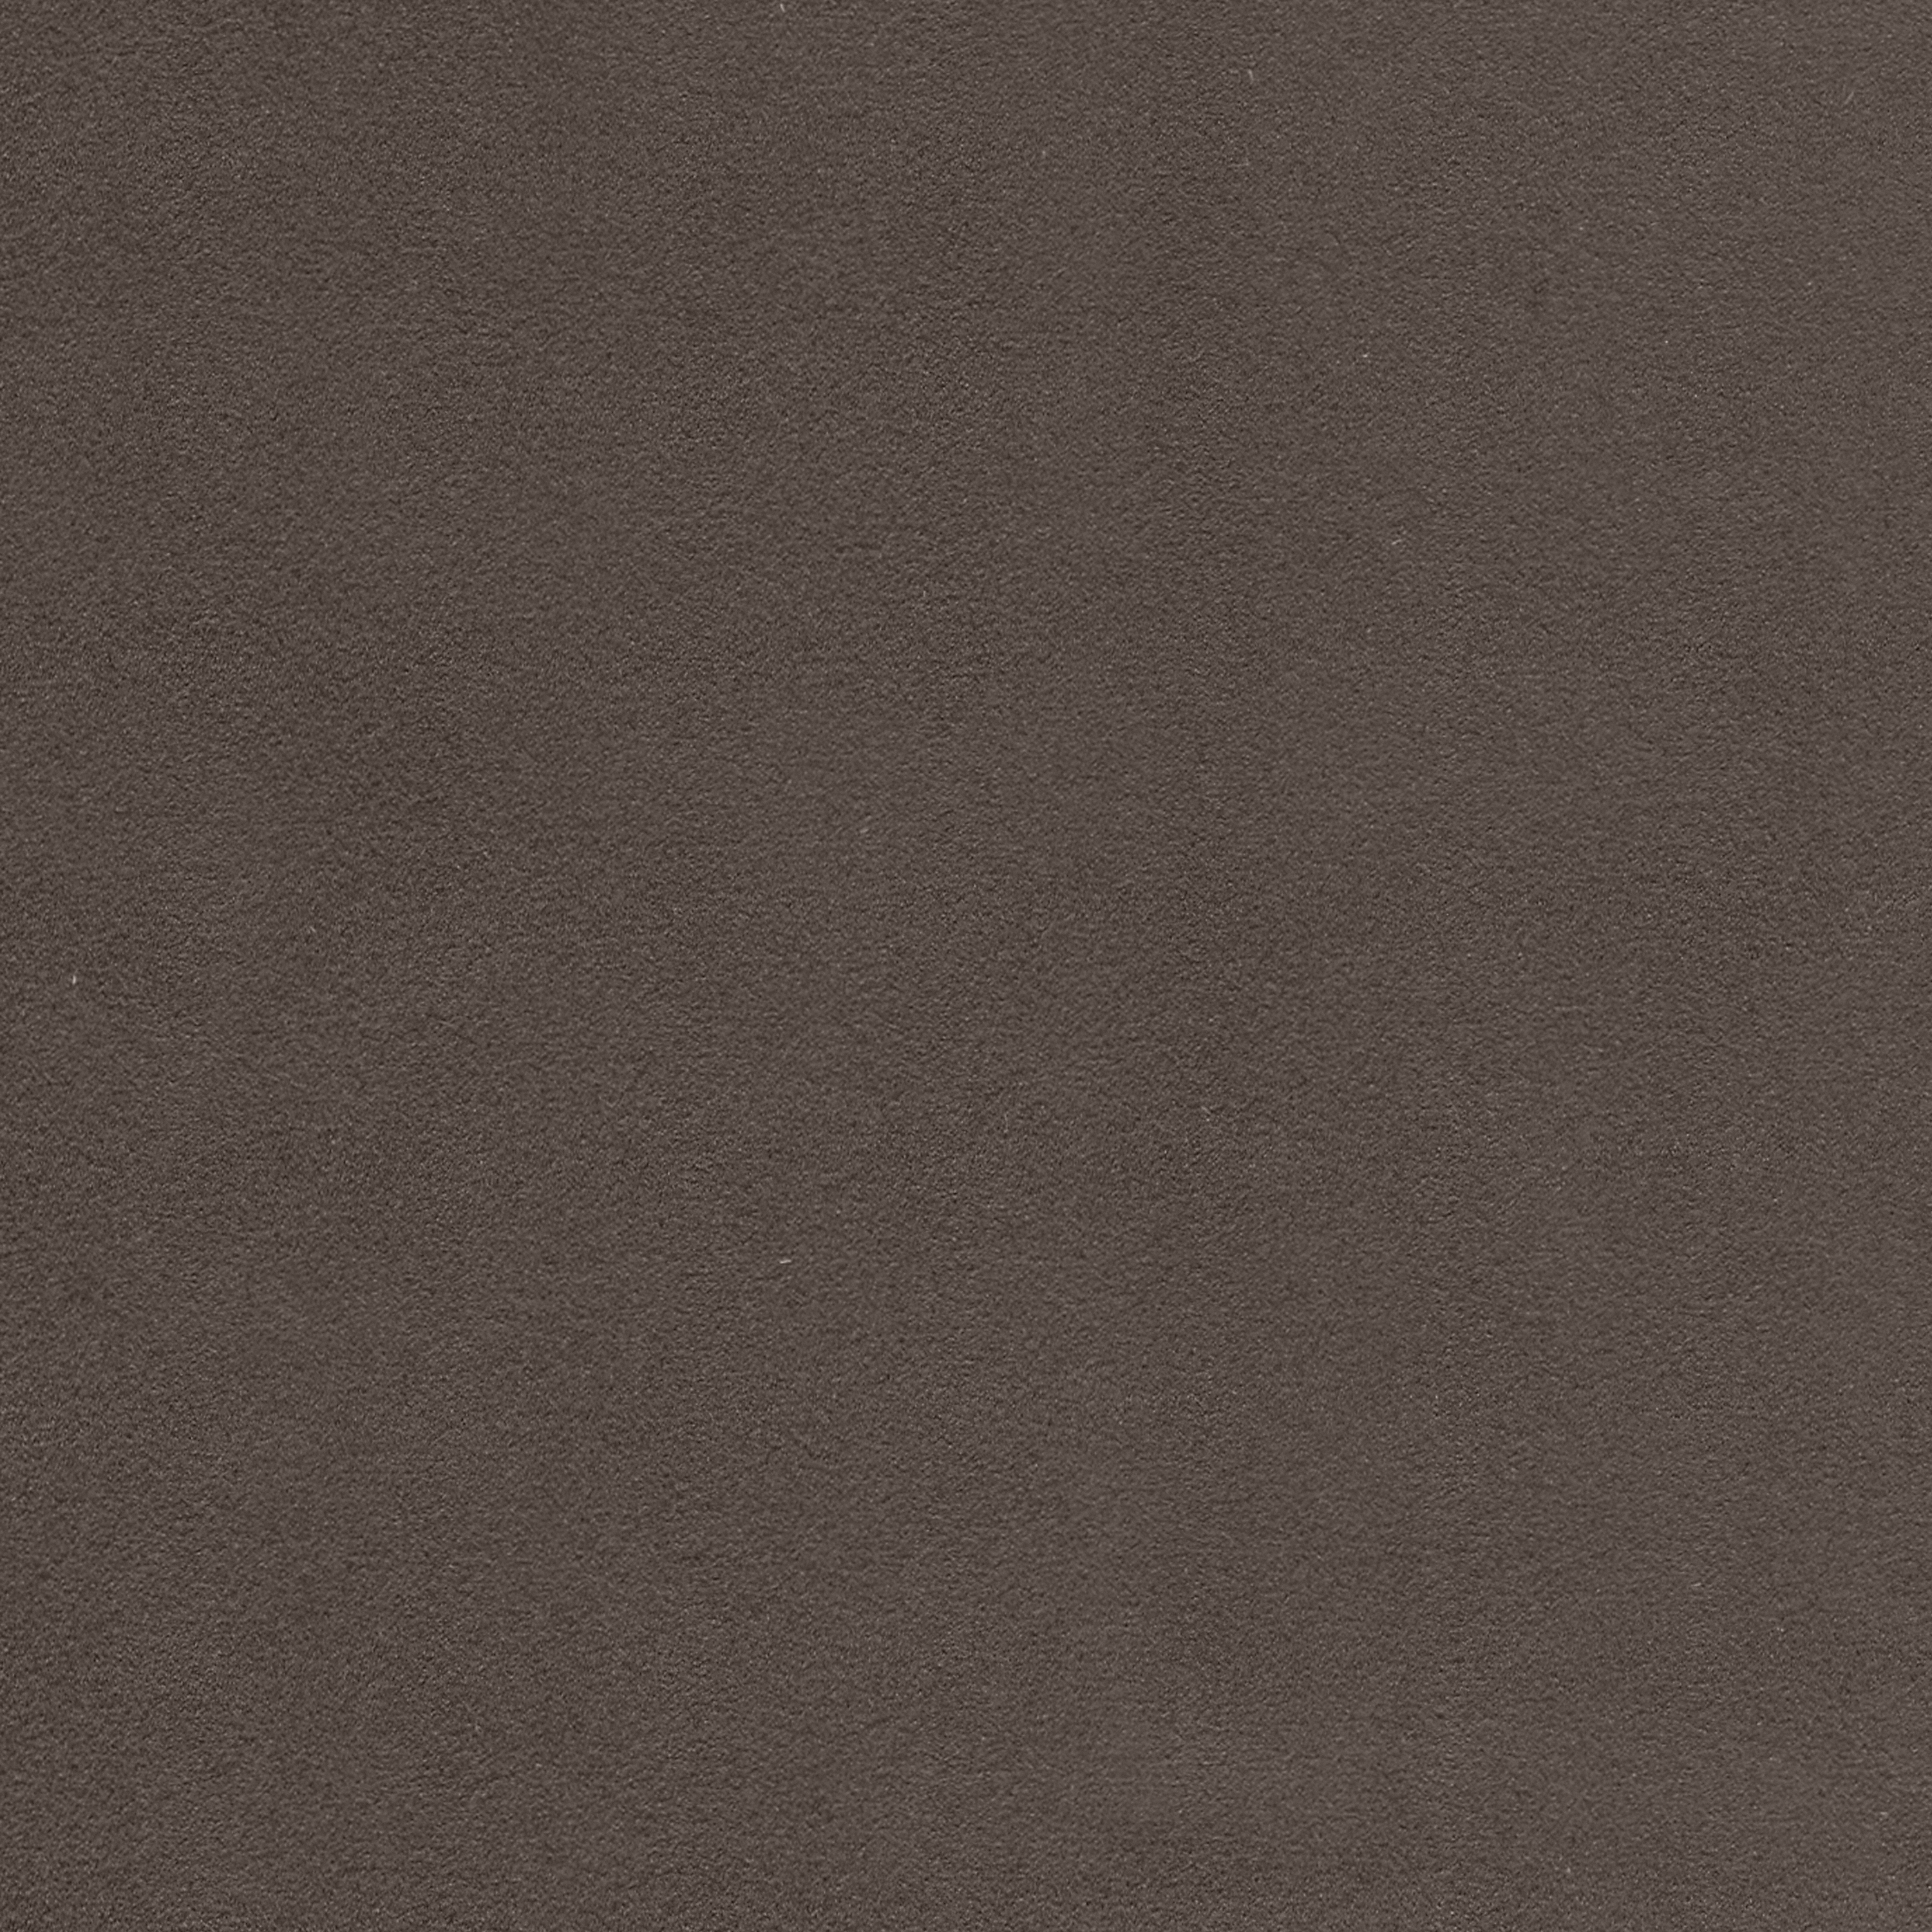 Chocolate Brown Microsuede Fabric